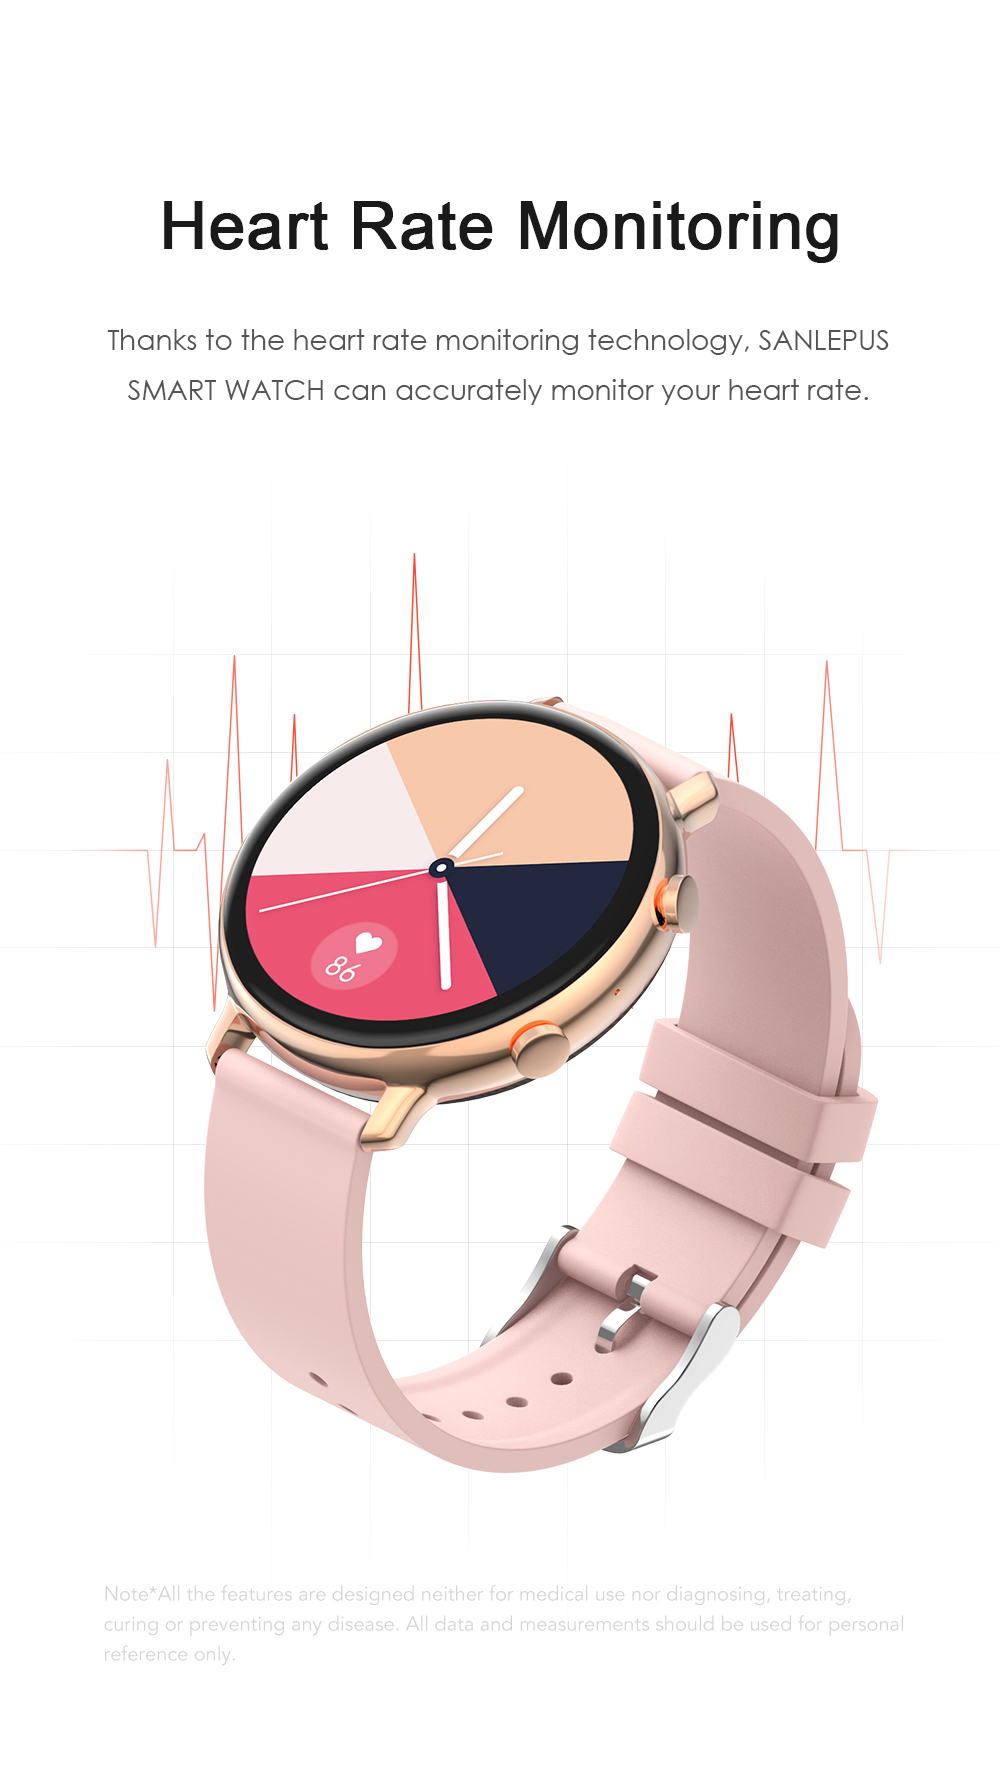 H283bdc29819749b98f28a8608fcebdd0n SANLEPUS ECG PPG Smart Watch With Dial Calls 2021 New Men Women Smartwatch Blood Pressure Monitor For Android Samsung Apple